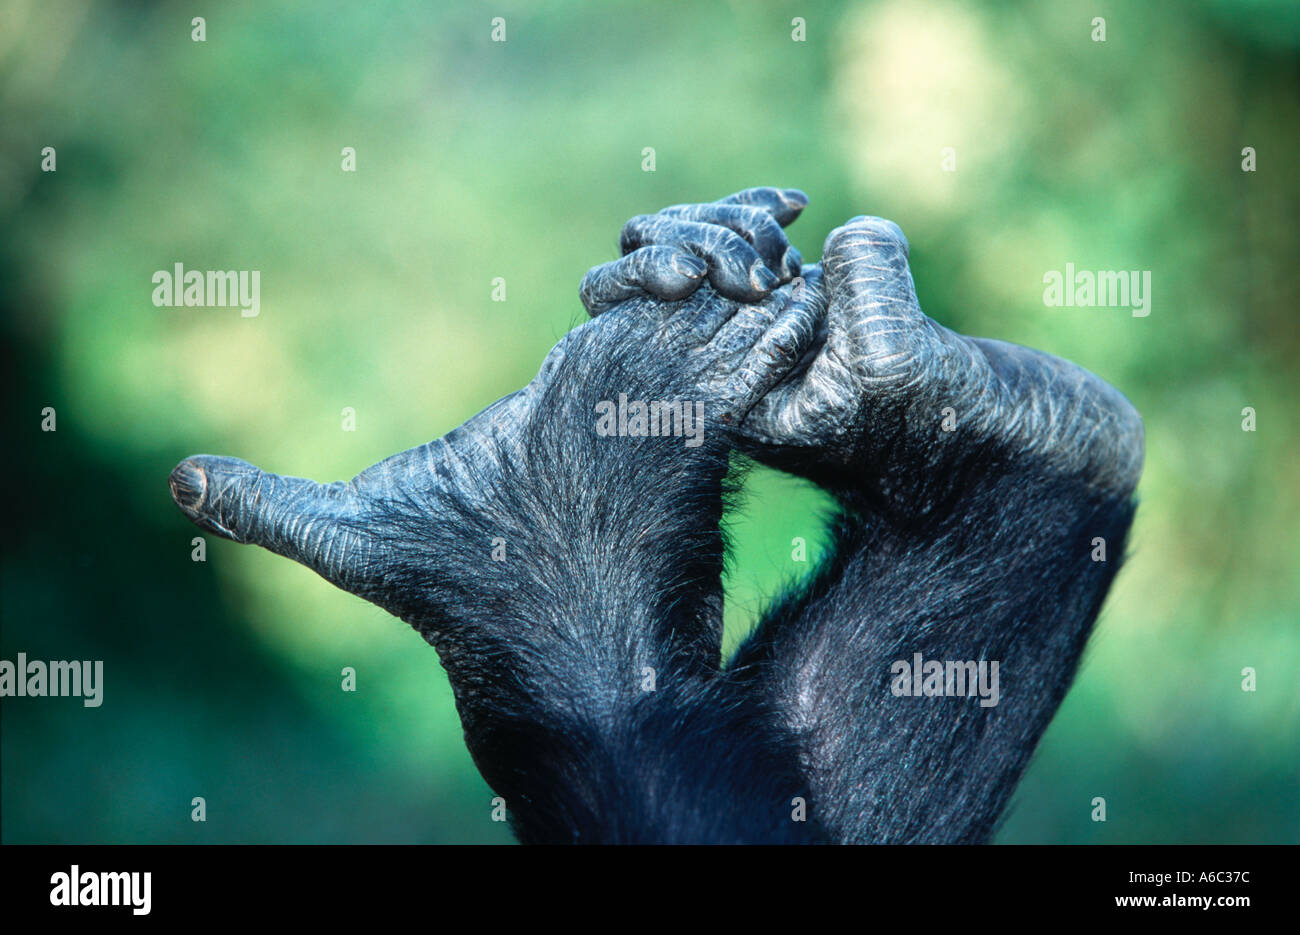 Chimpanzee Pan troglodytes Hands and feet have opposable digits Zambia West Central Africa - Stock Image